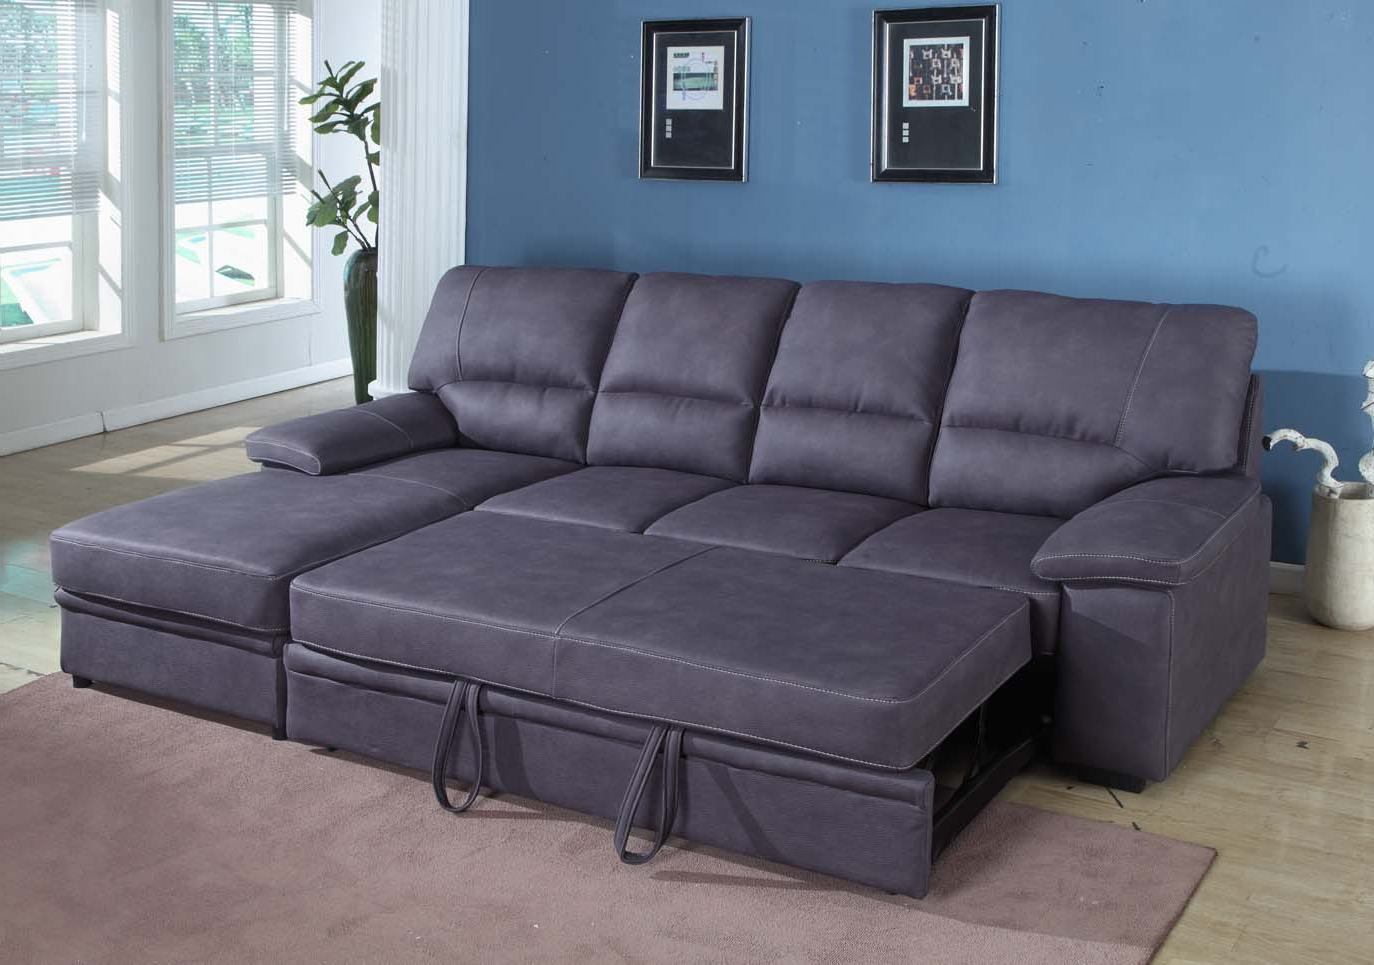 Seating Furniture – Sleeper Sectional Sofa – Pickndecor With Well Liked Lucy Dark Grey 2 Piece Sleeper Sectionals With Laf Chaise (View 12 of 20)